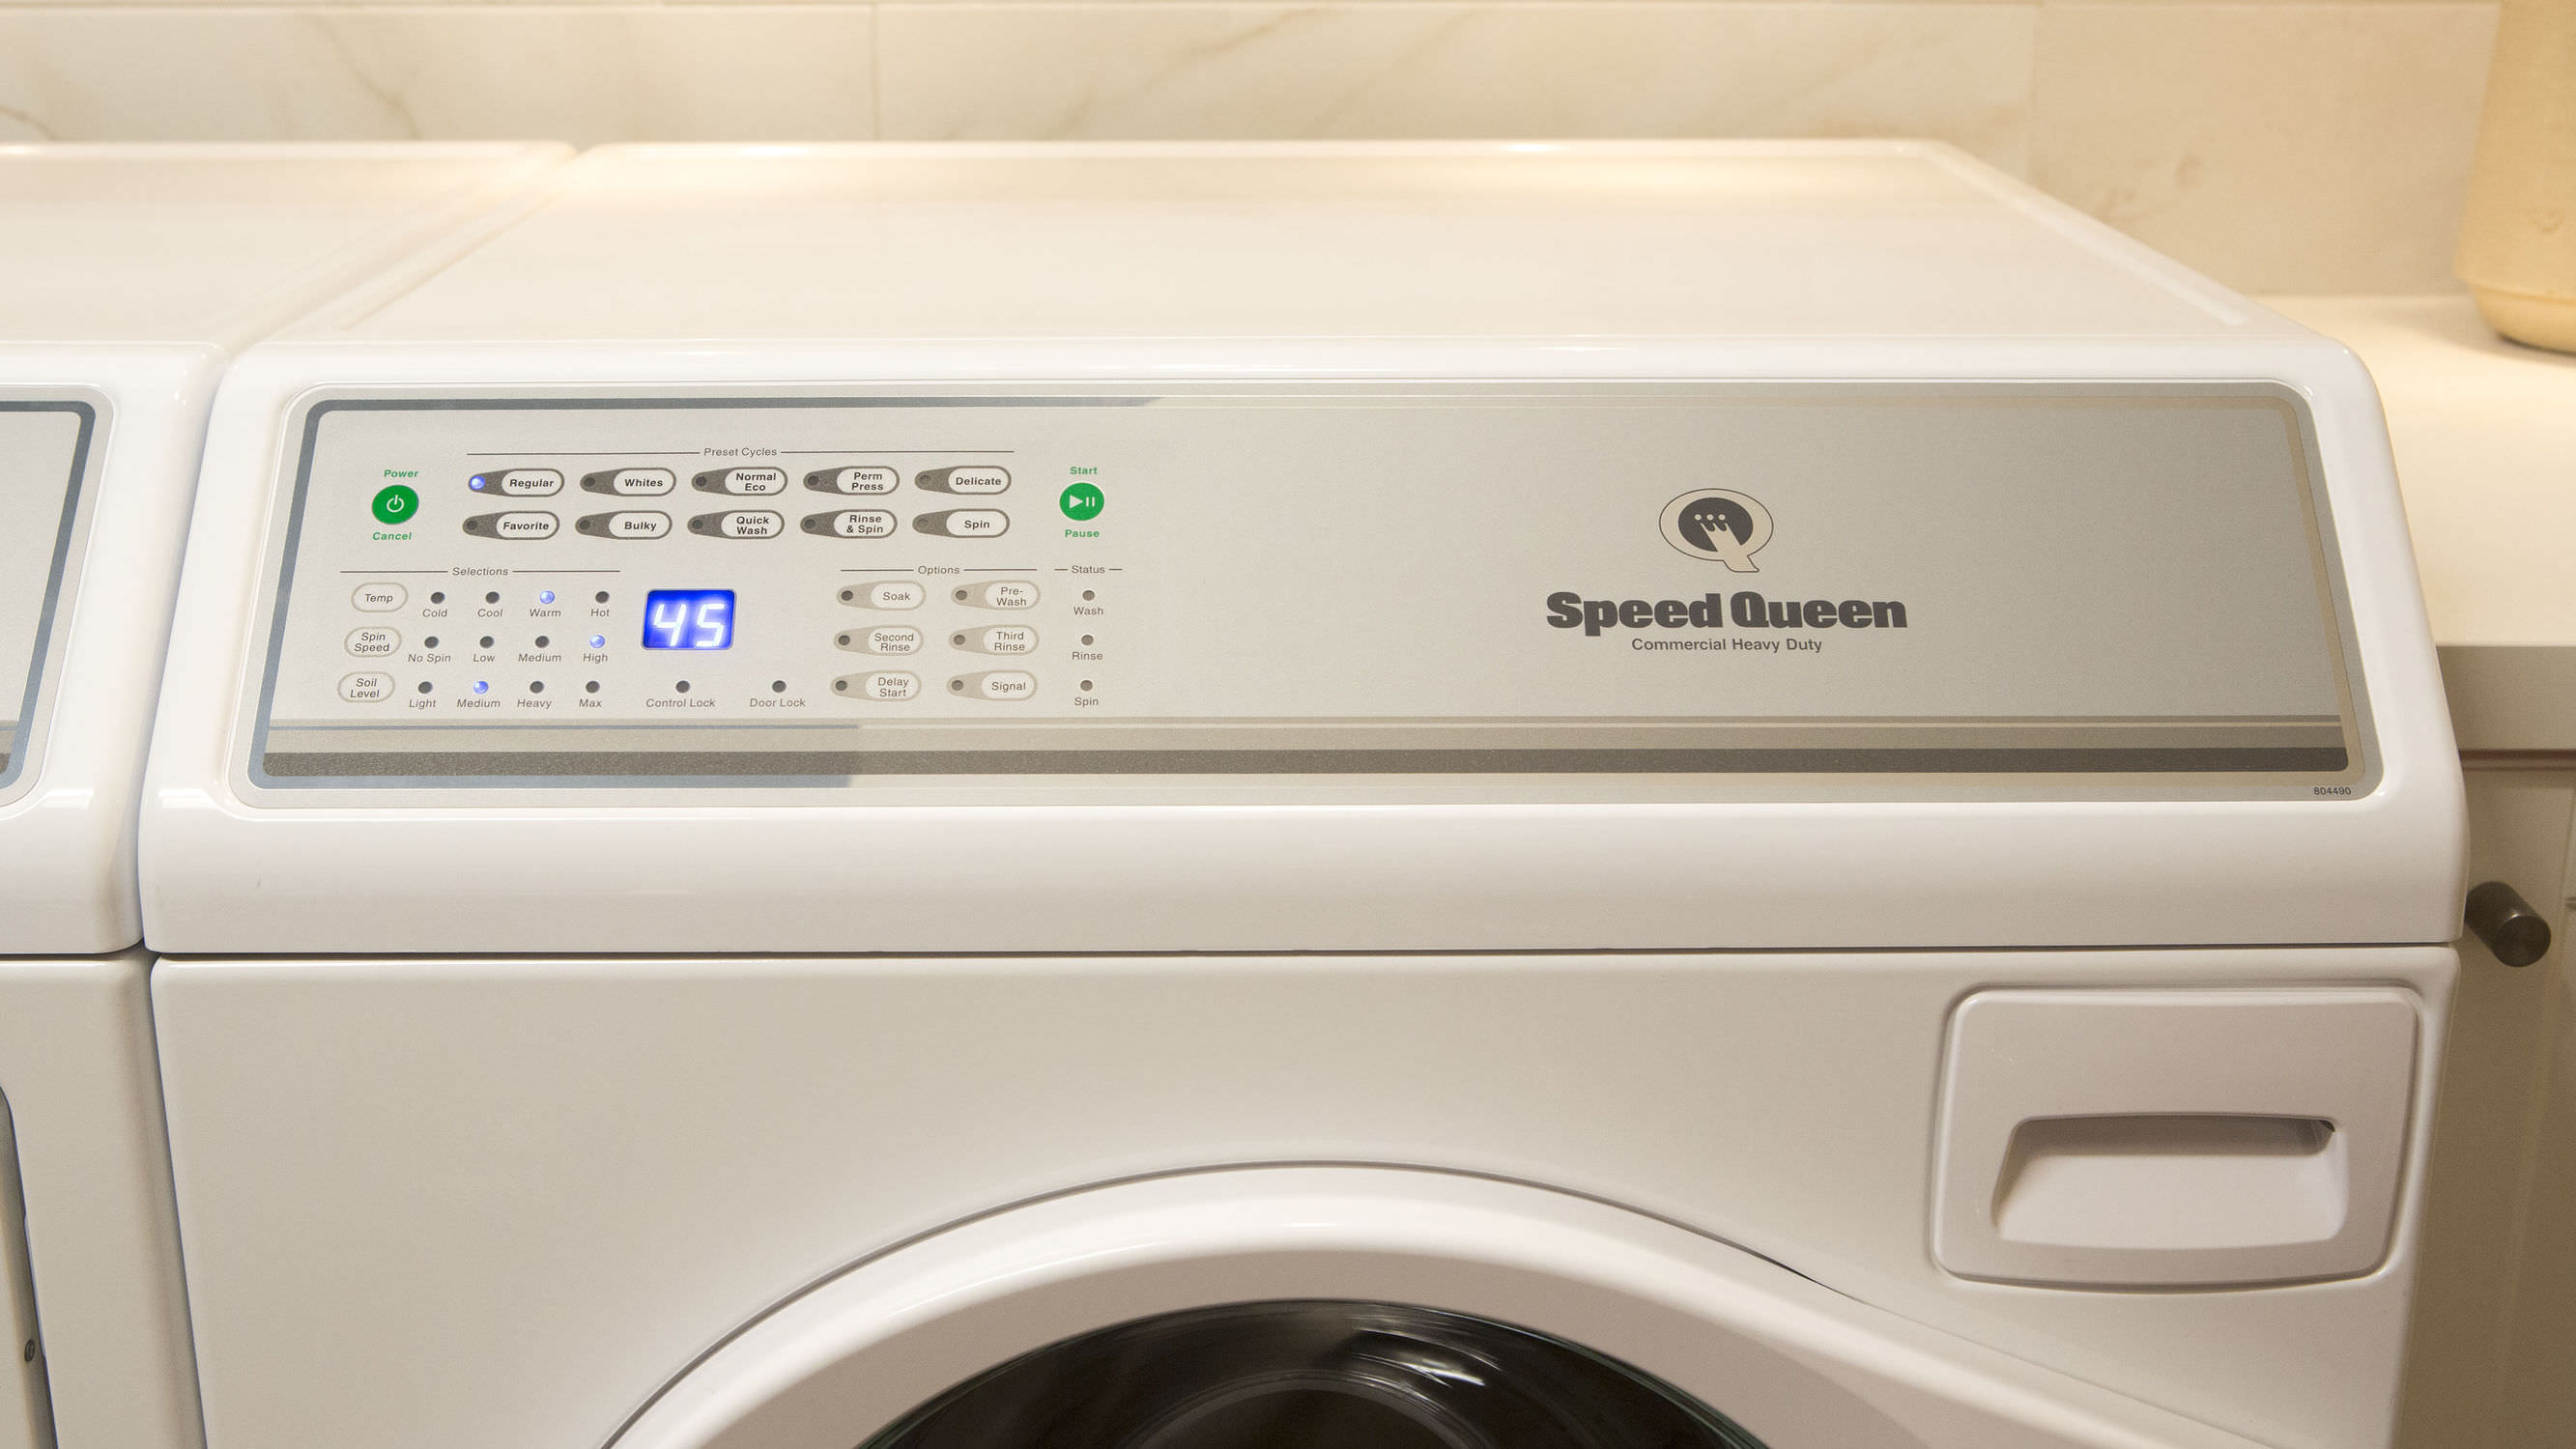 Speed Queen Washer 9-cycle, 11 7gl AFNE9BSP113TW01